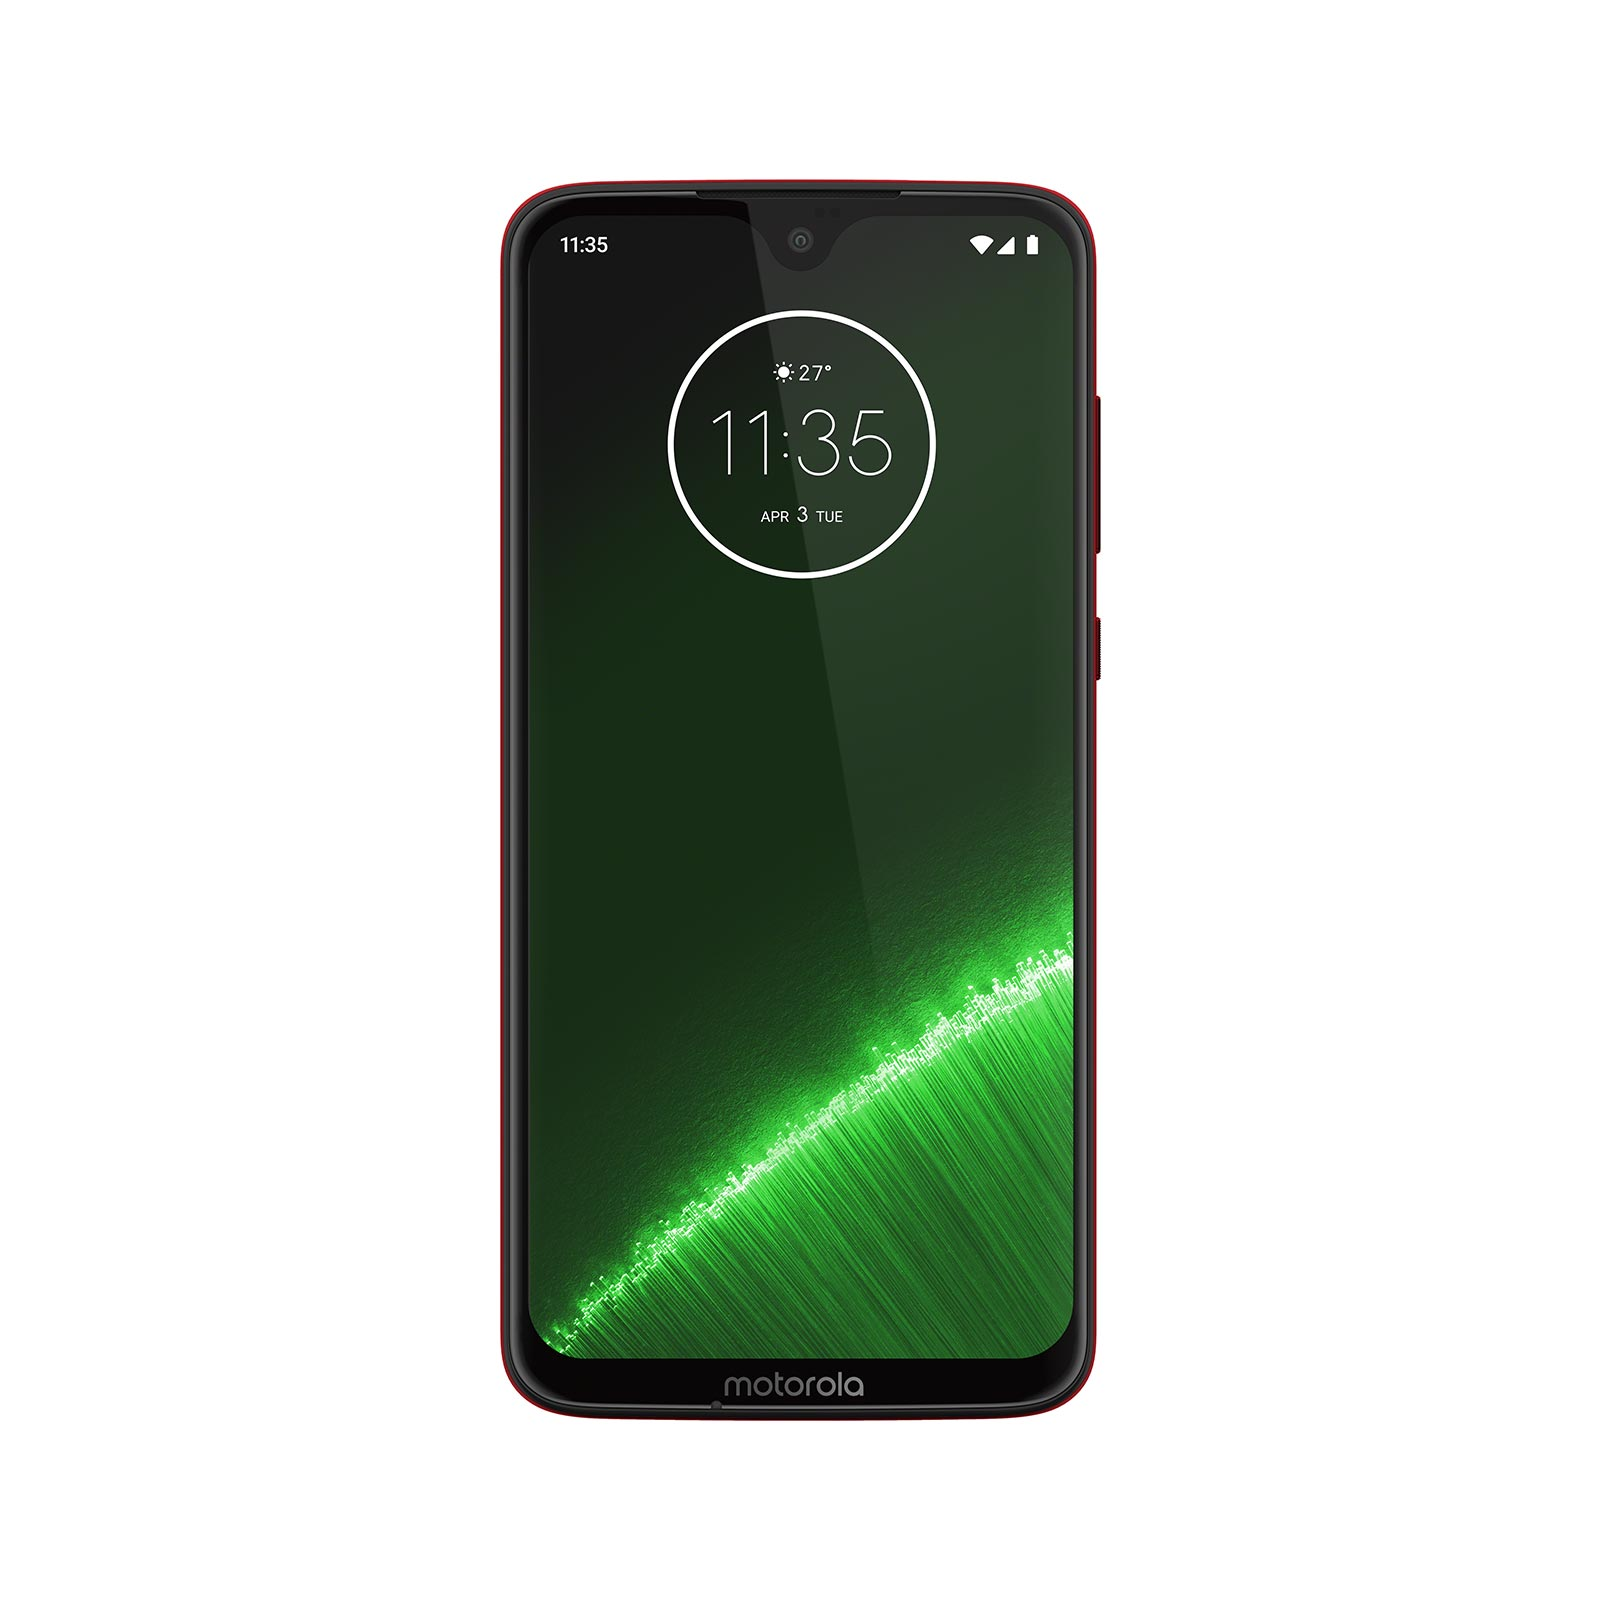 Motorola G7 Plus Specs And Reviews Pickr Your